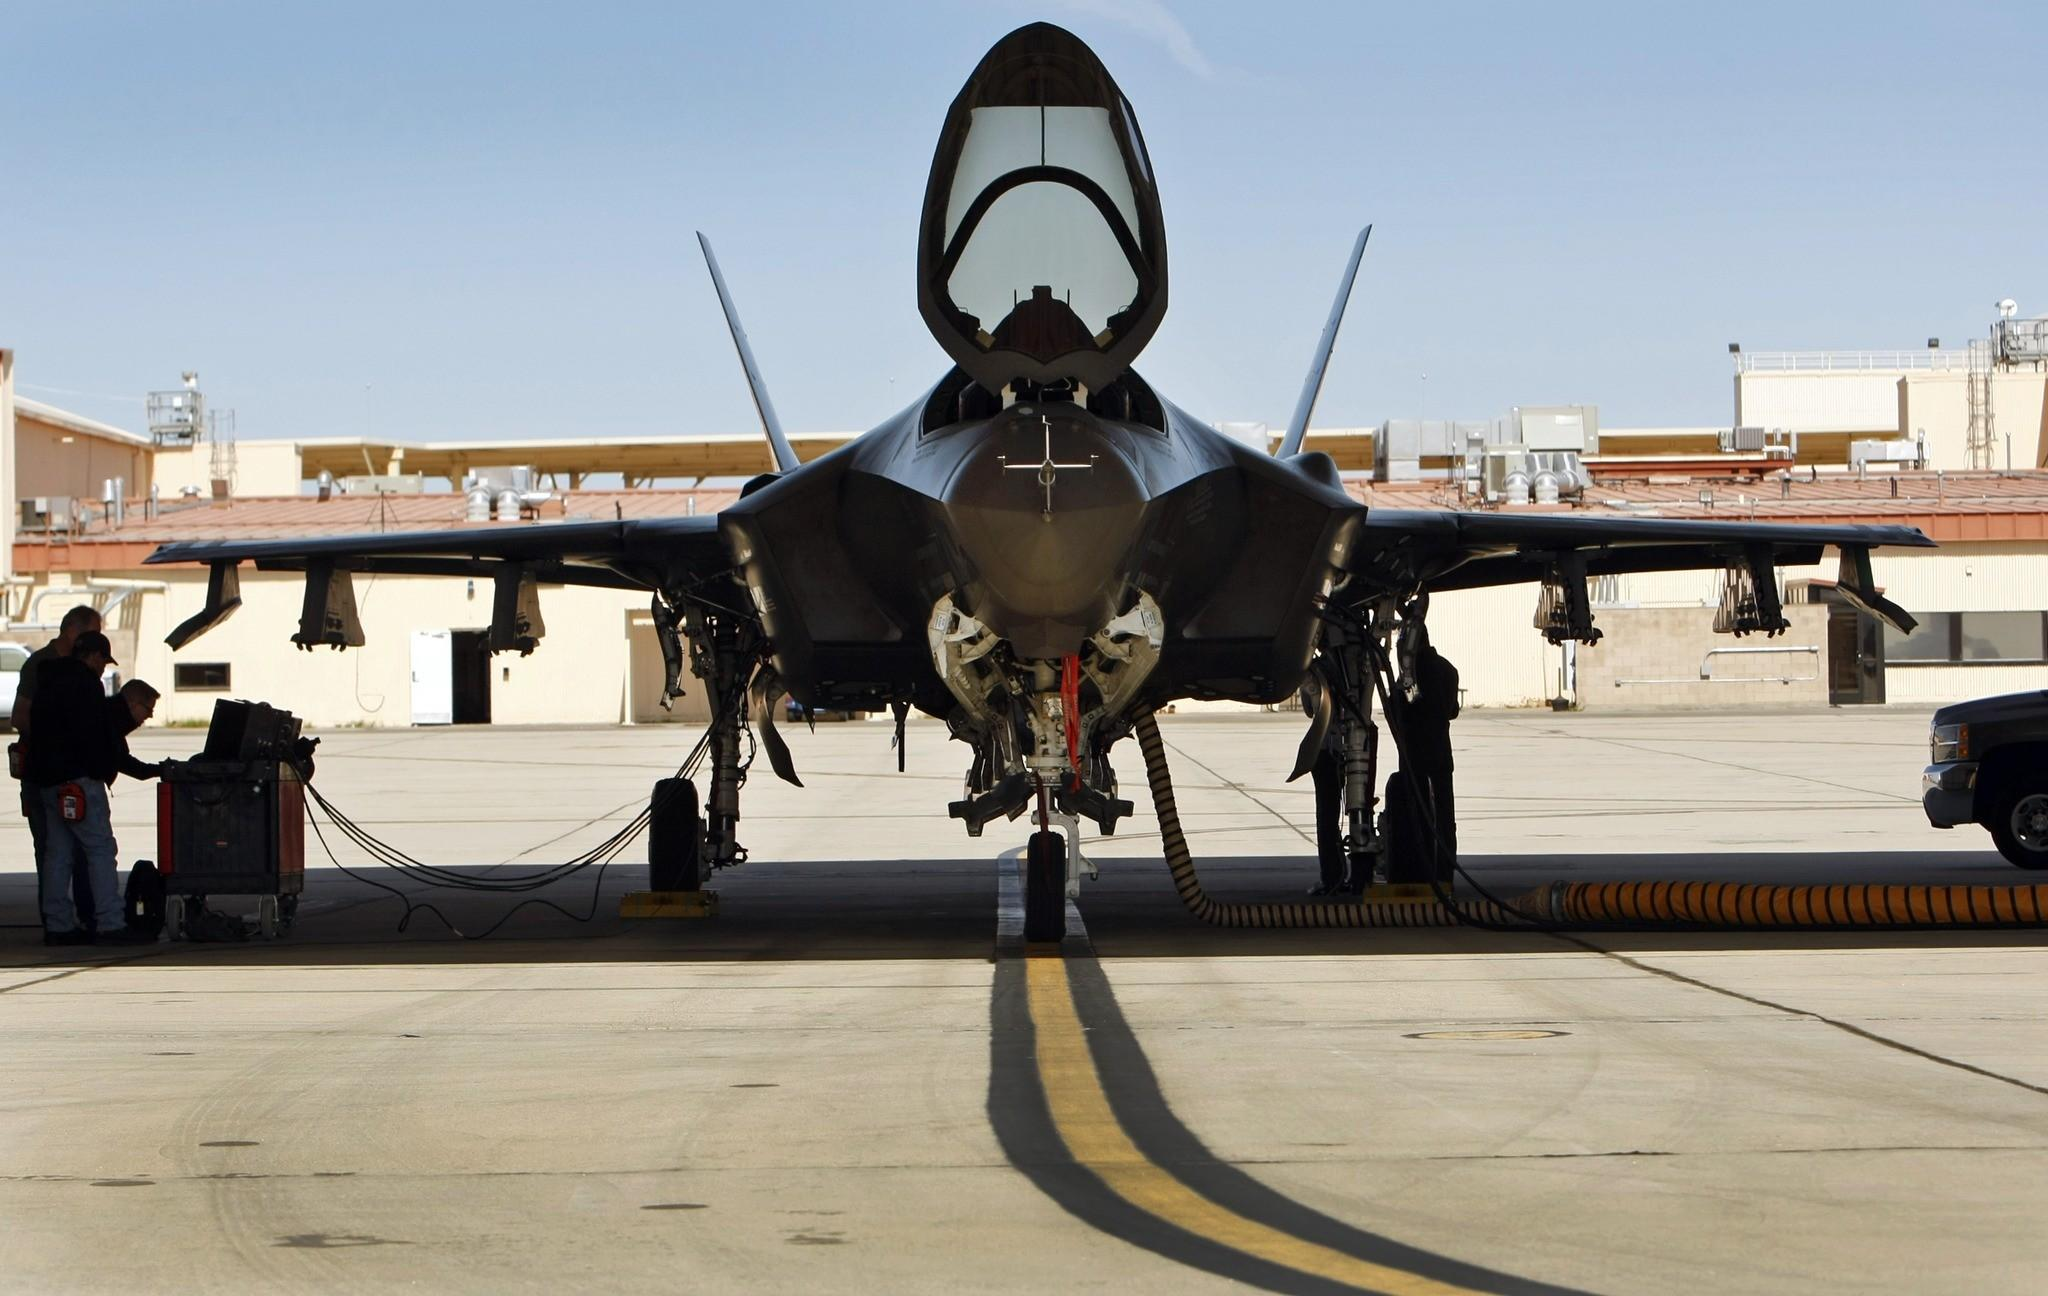 F-35 fighter jet struggles to take off - Los Angeles Times